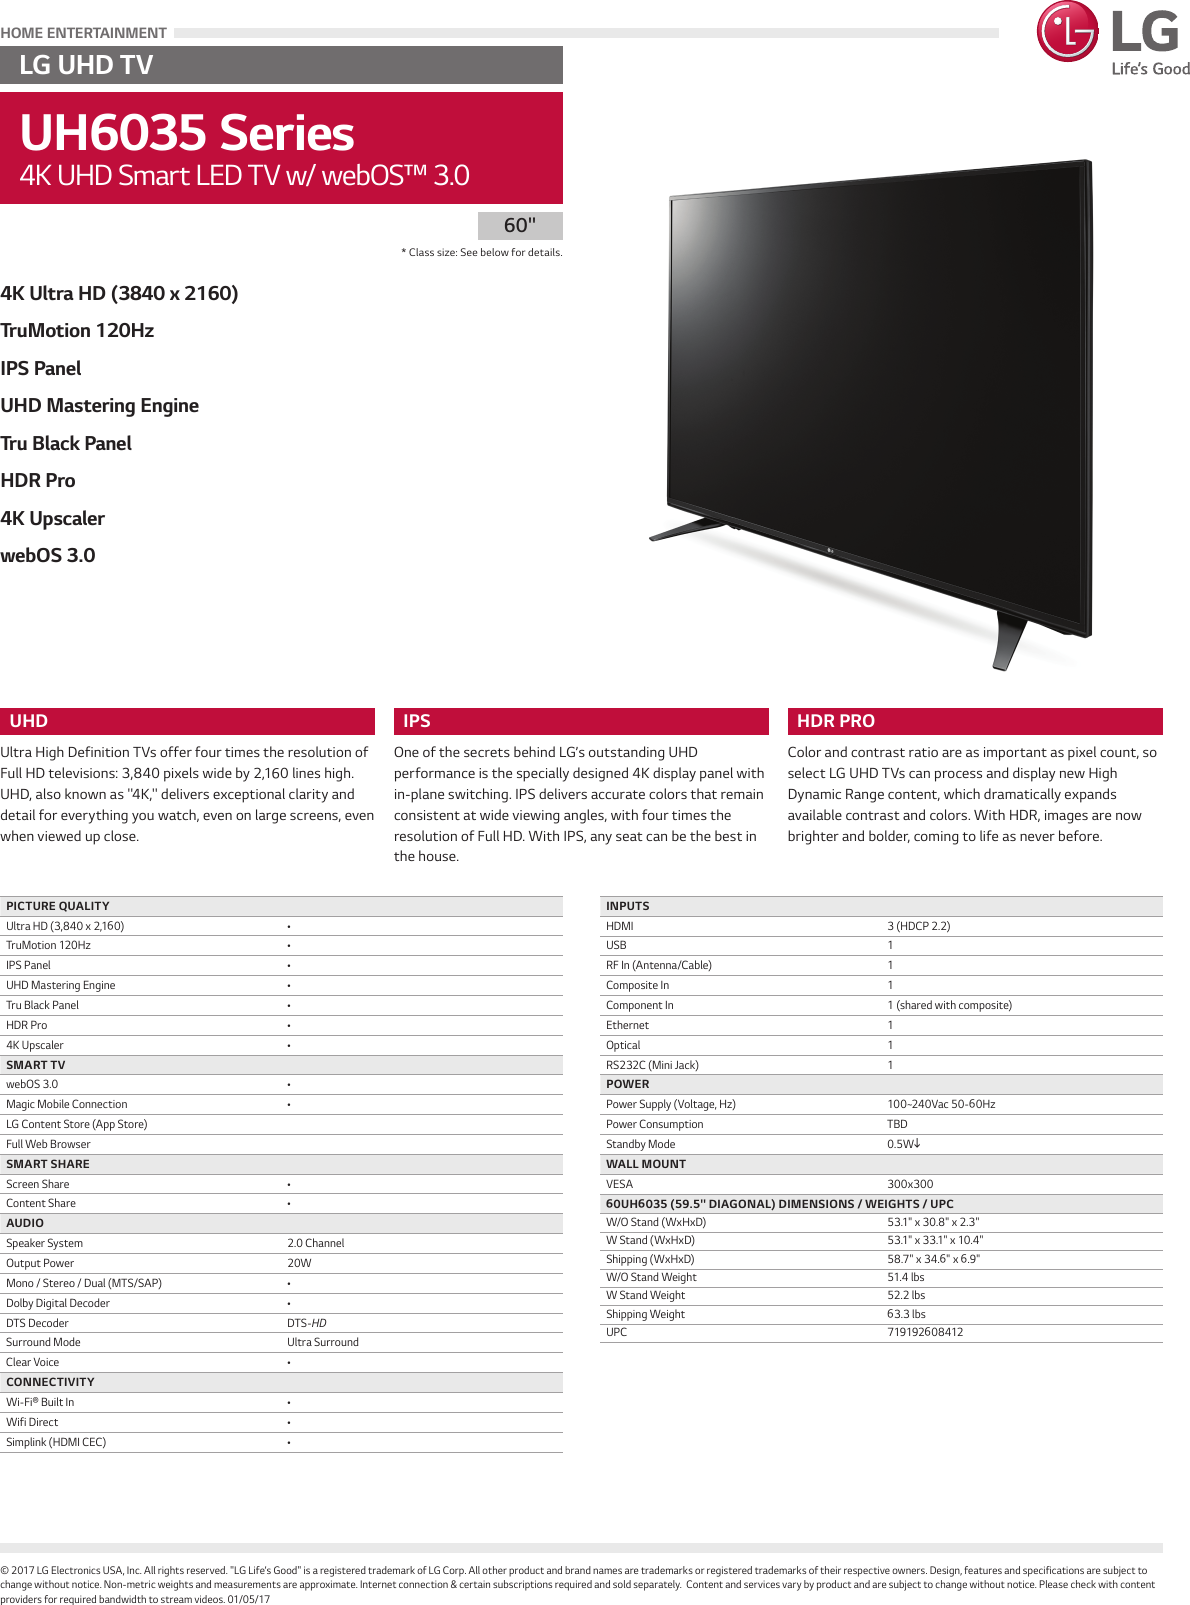 LG 60UH6035 User Manual Specification UH6035 Series Spec Sheet